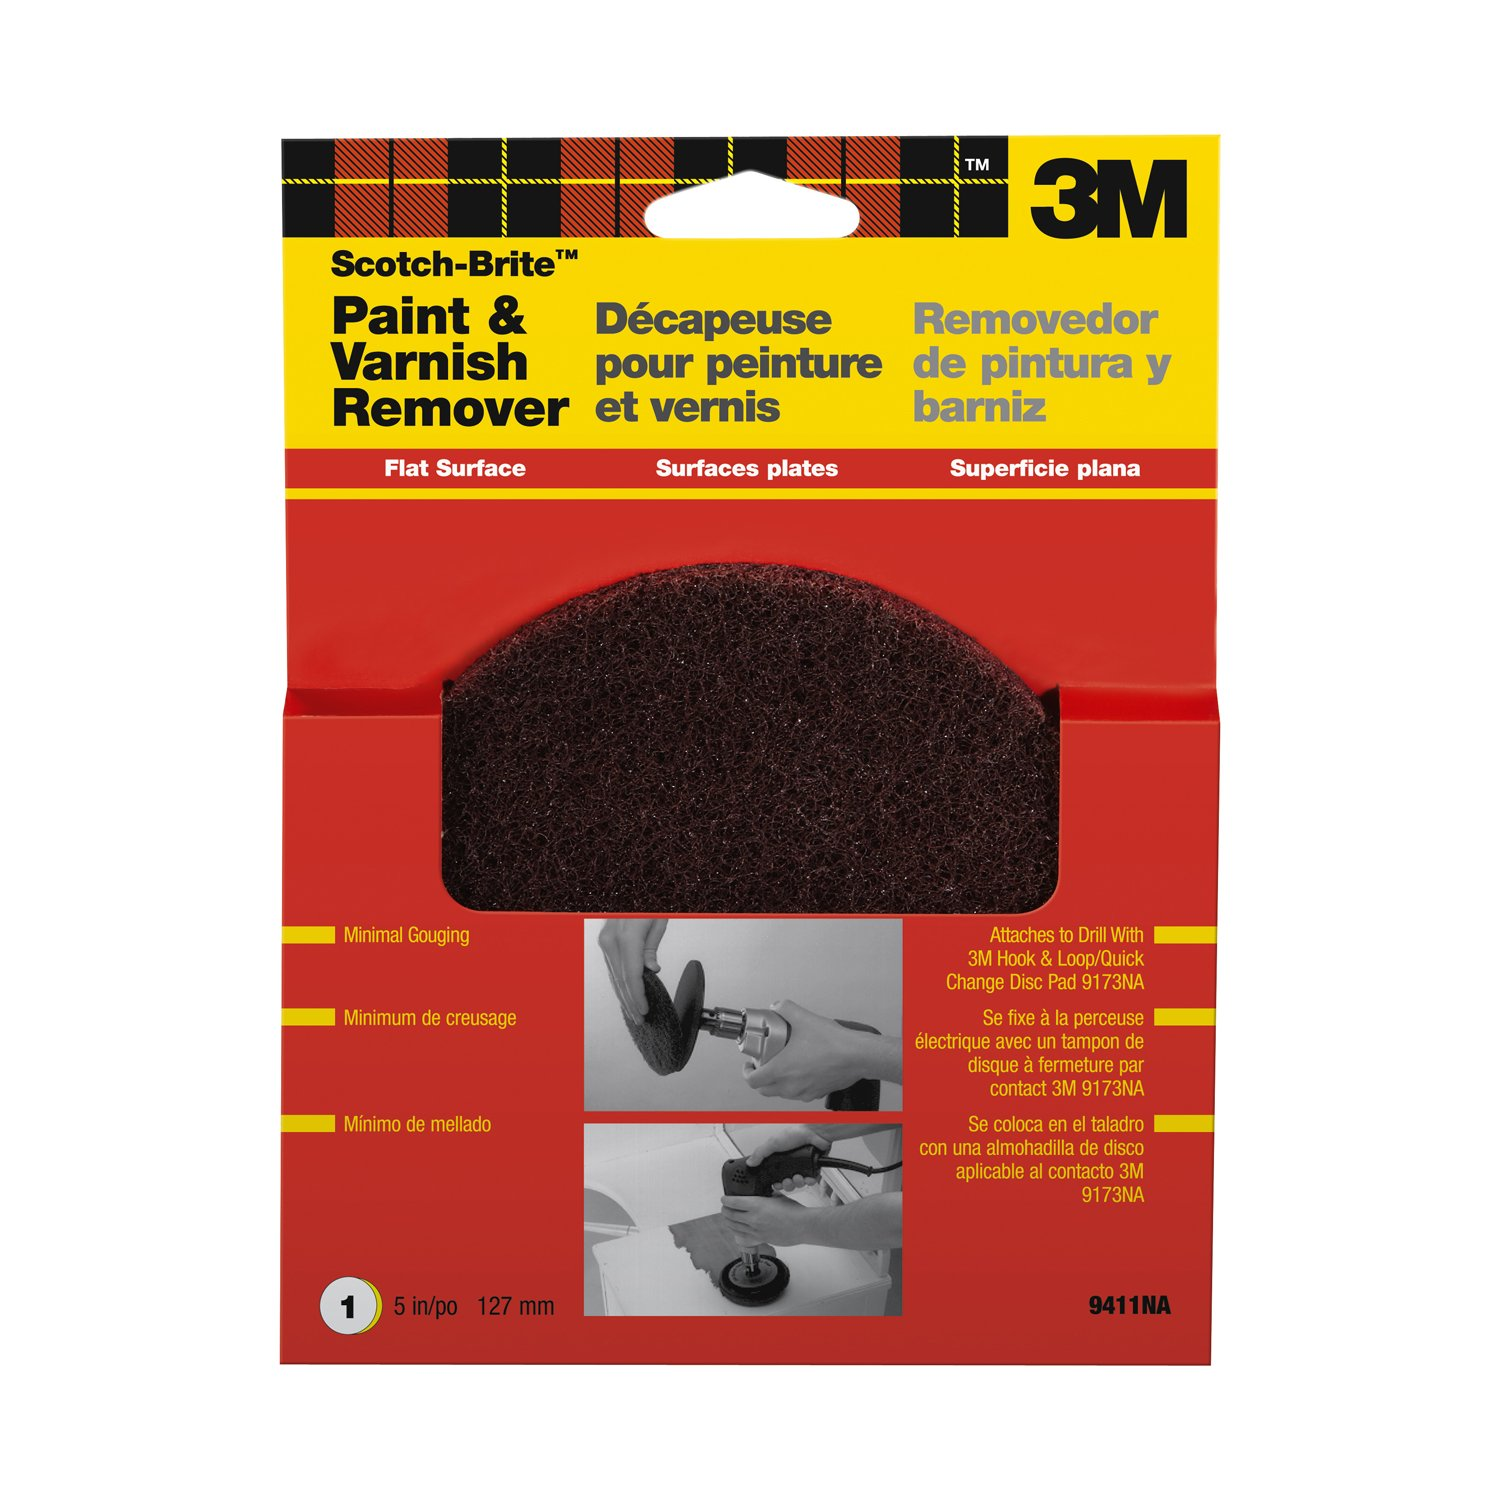 3M Scotch-Brite Flat Surface Paint and Rust Stripper (9410NA) - Hook And Loop Discs - Amazon.com